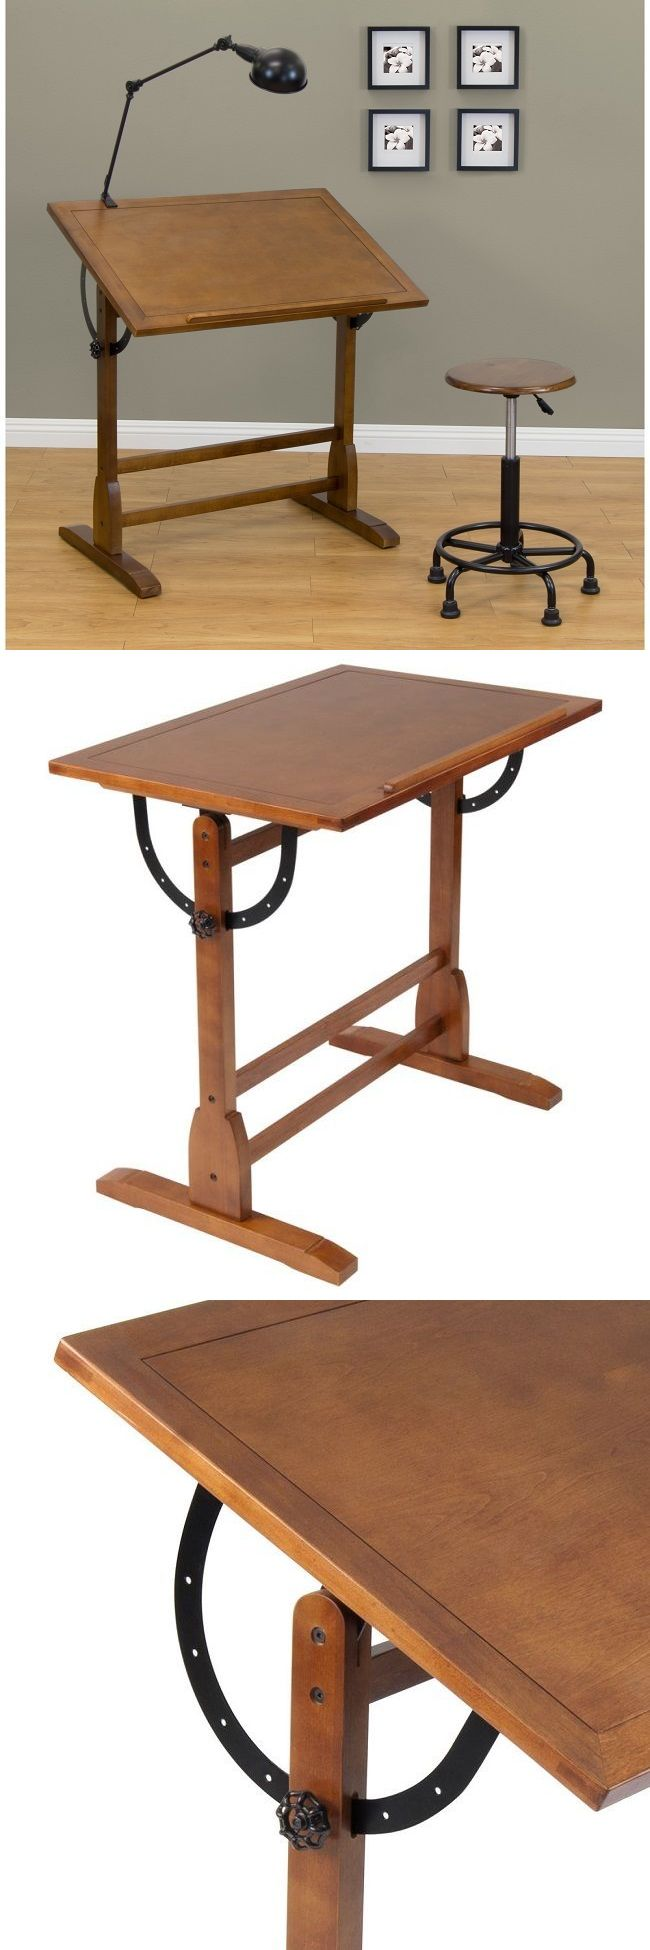 Drafting table home design ideas how to choose the best drafting - Drawing Boards And Tables 183083 Wood Drafting Table Hobby Drawing Rustic Office Work Station Adjustable